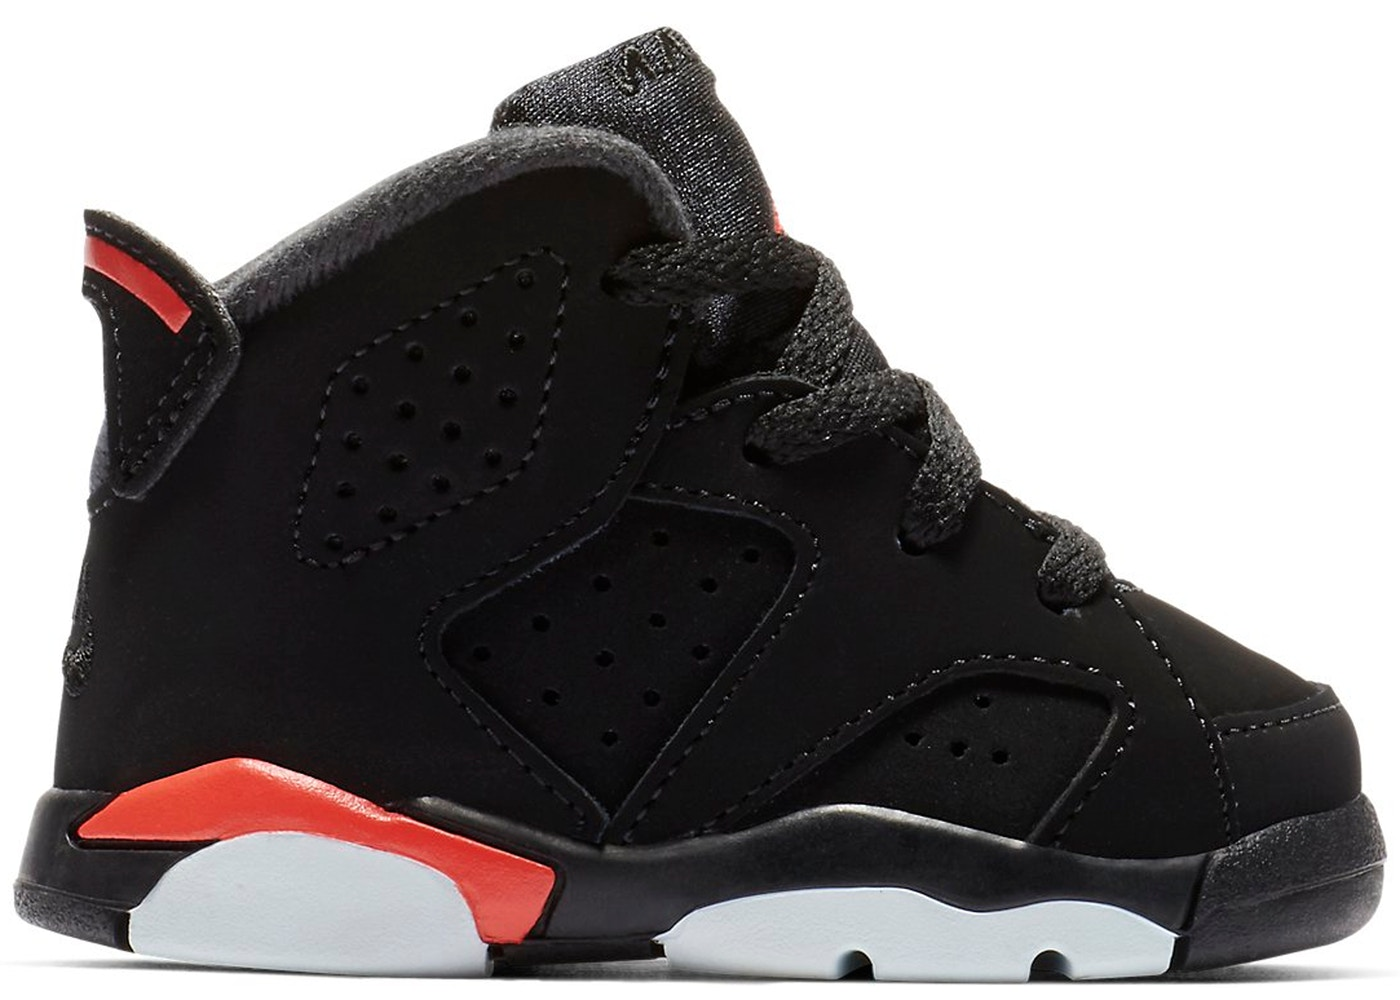 designer fashion 63c3a d443c Jordan 6 Retro Black Infrared 2019 (TD)